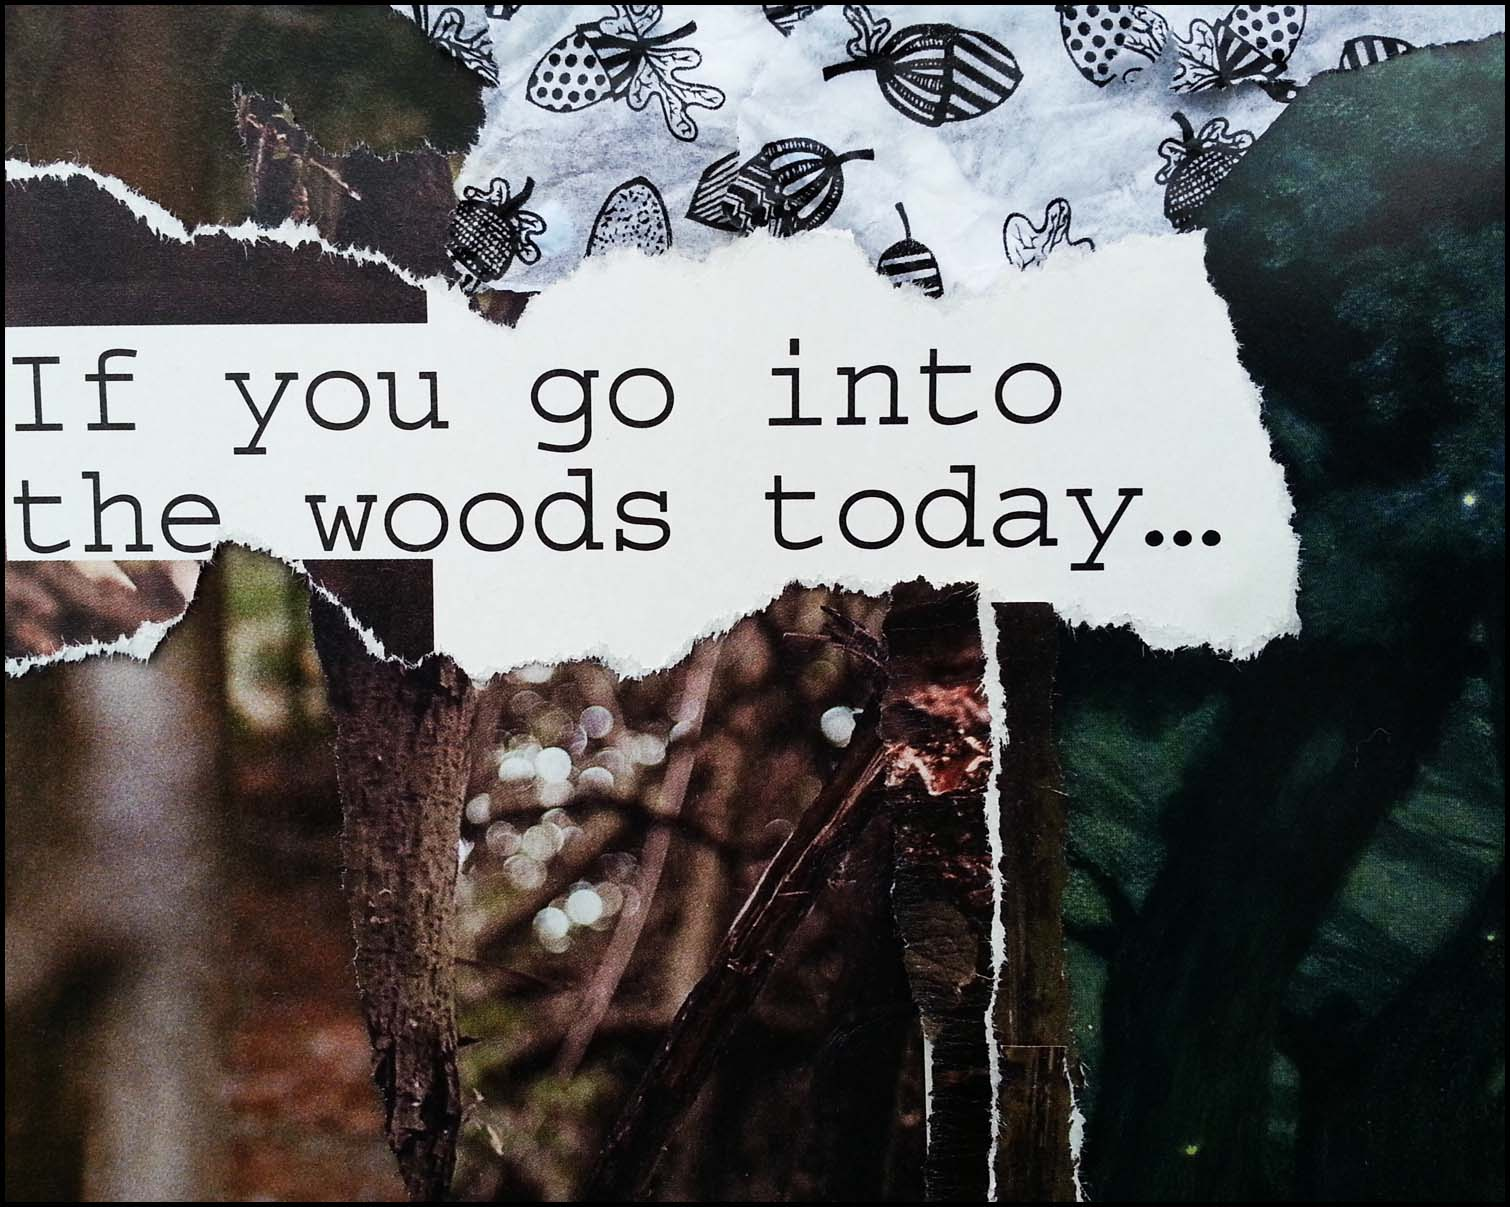 If you go into the woods today...